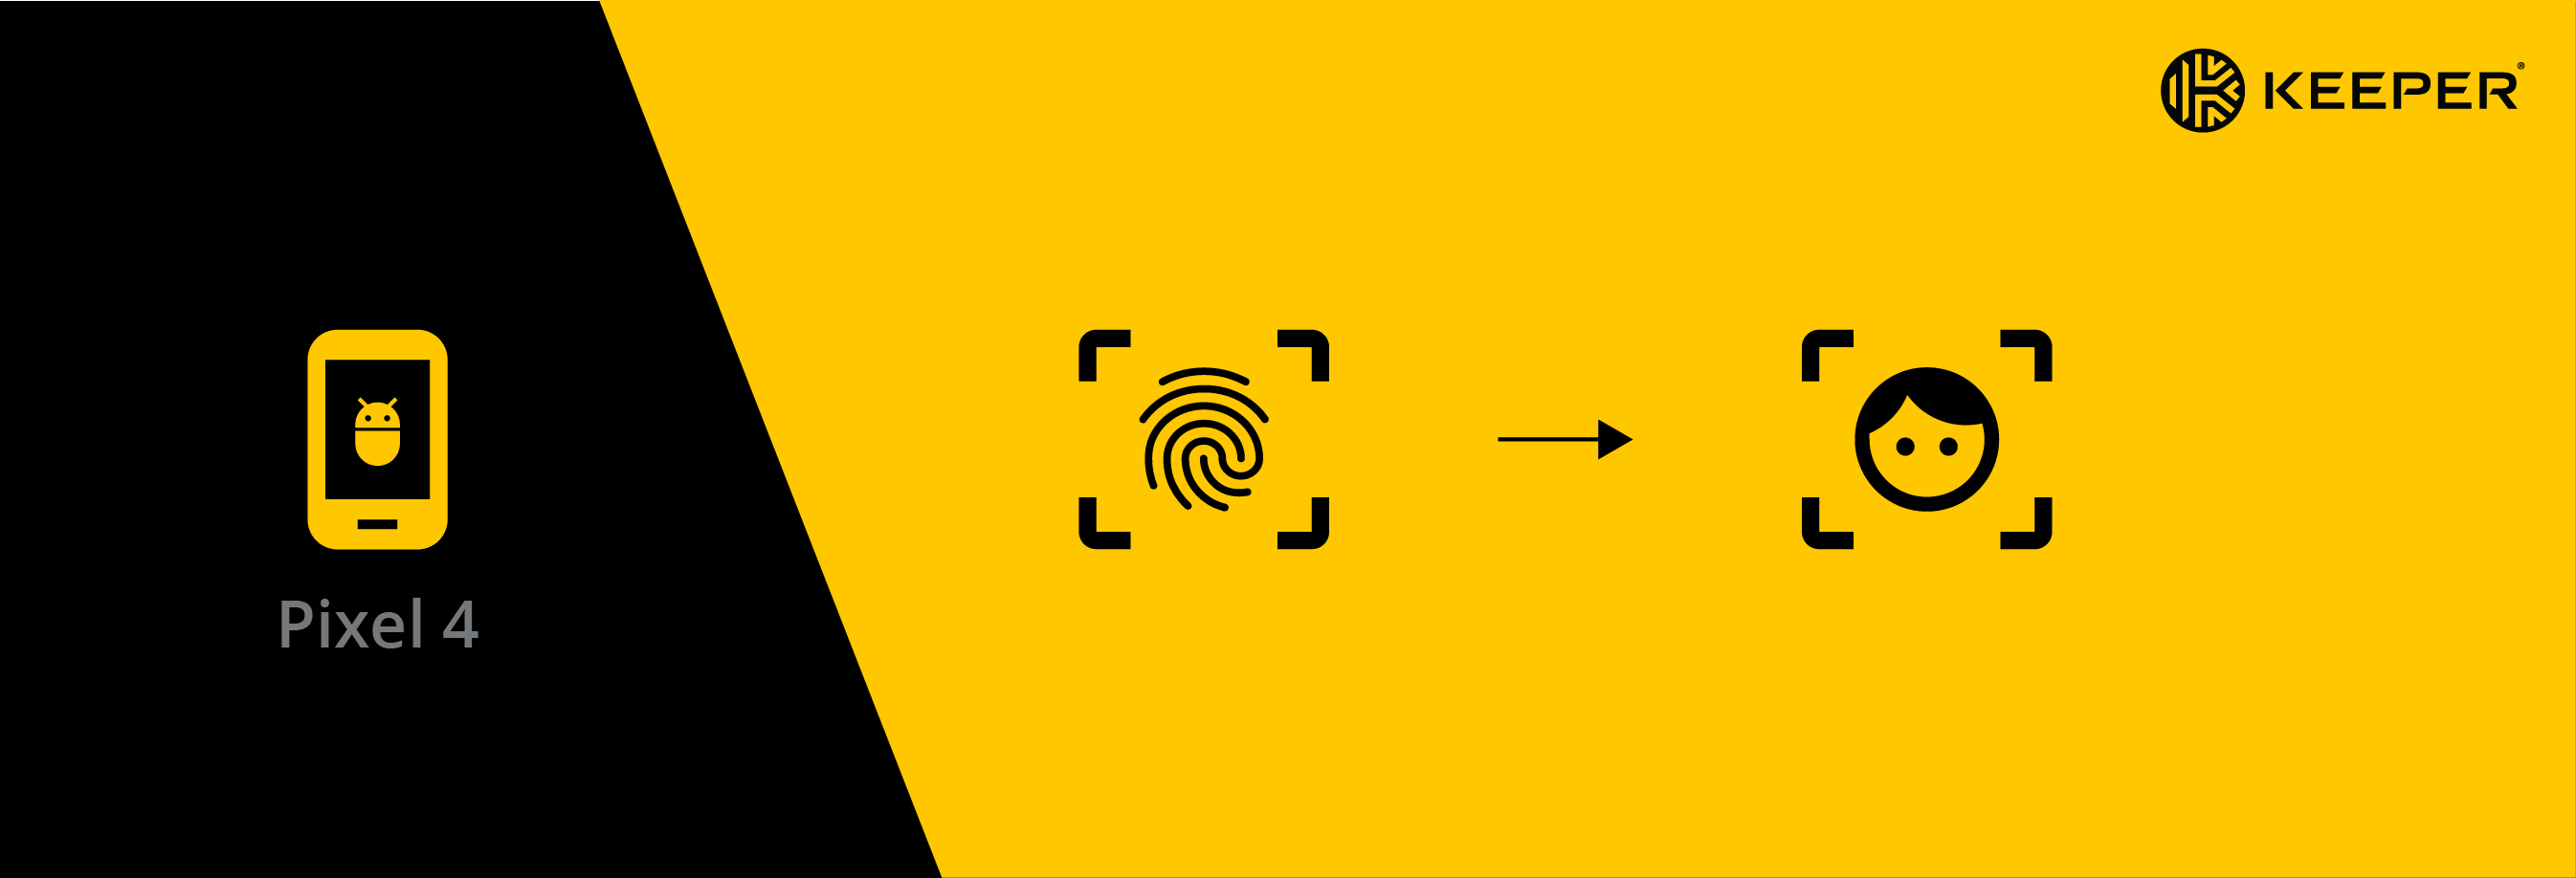 Keeper Is the First Password Manager to Support the Pixel 4's New BiometricPrompt API